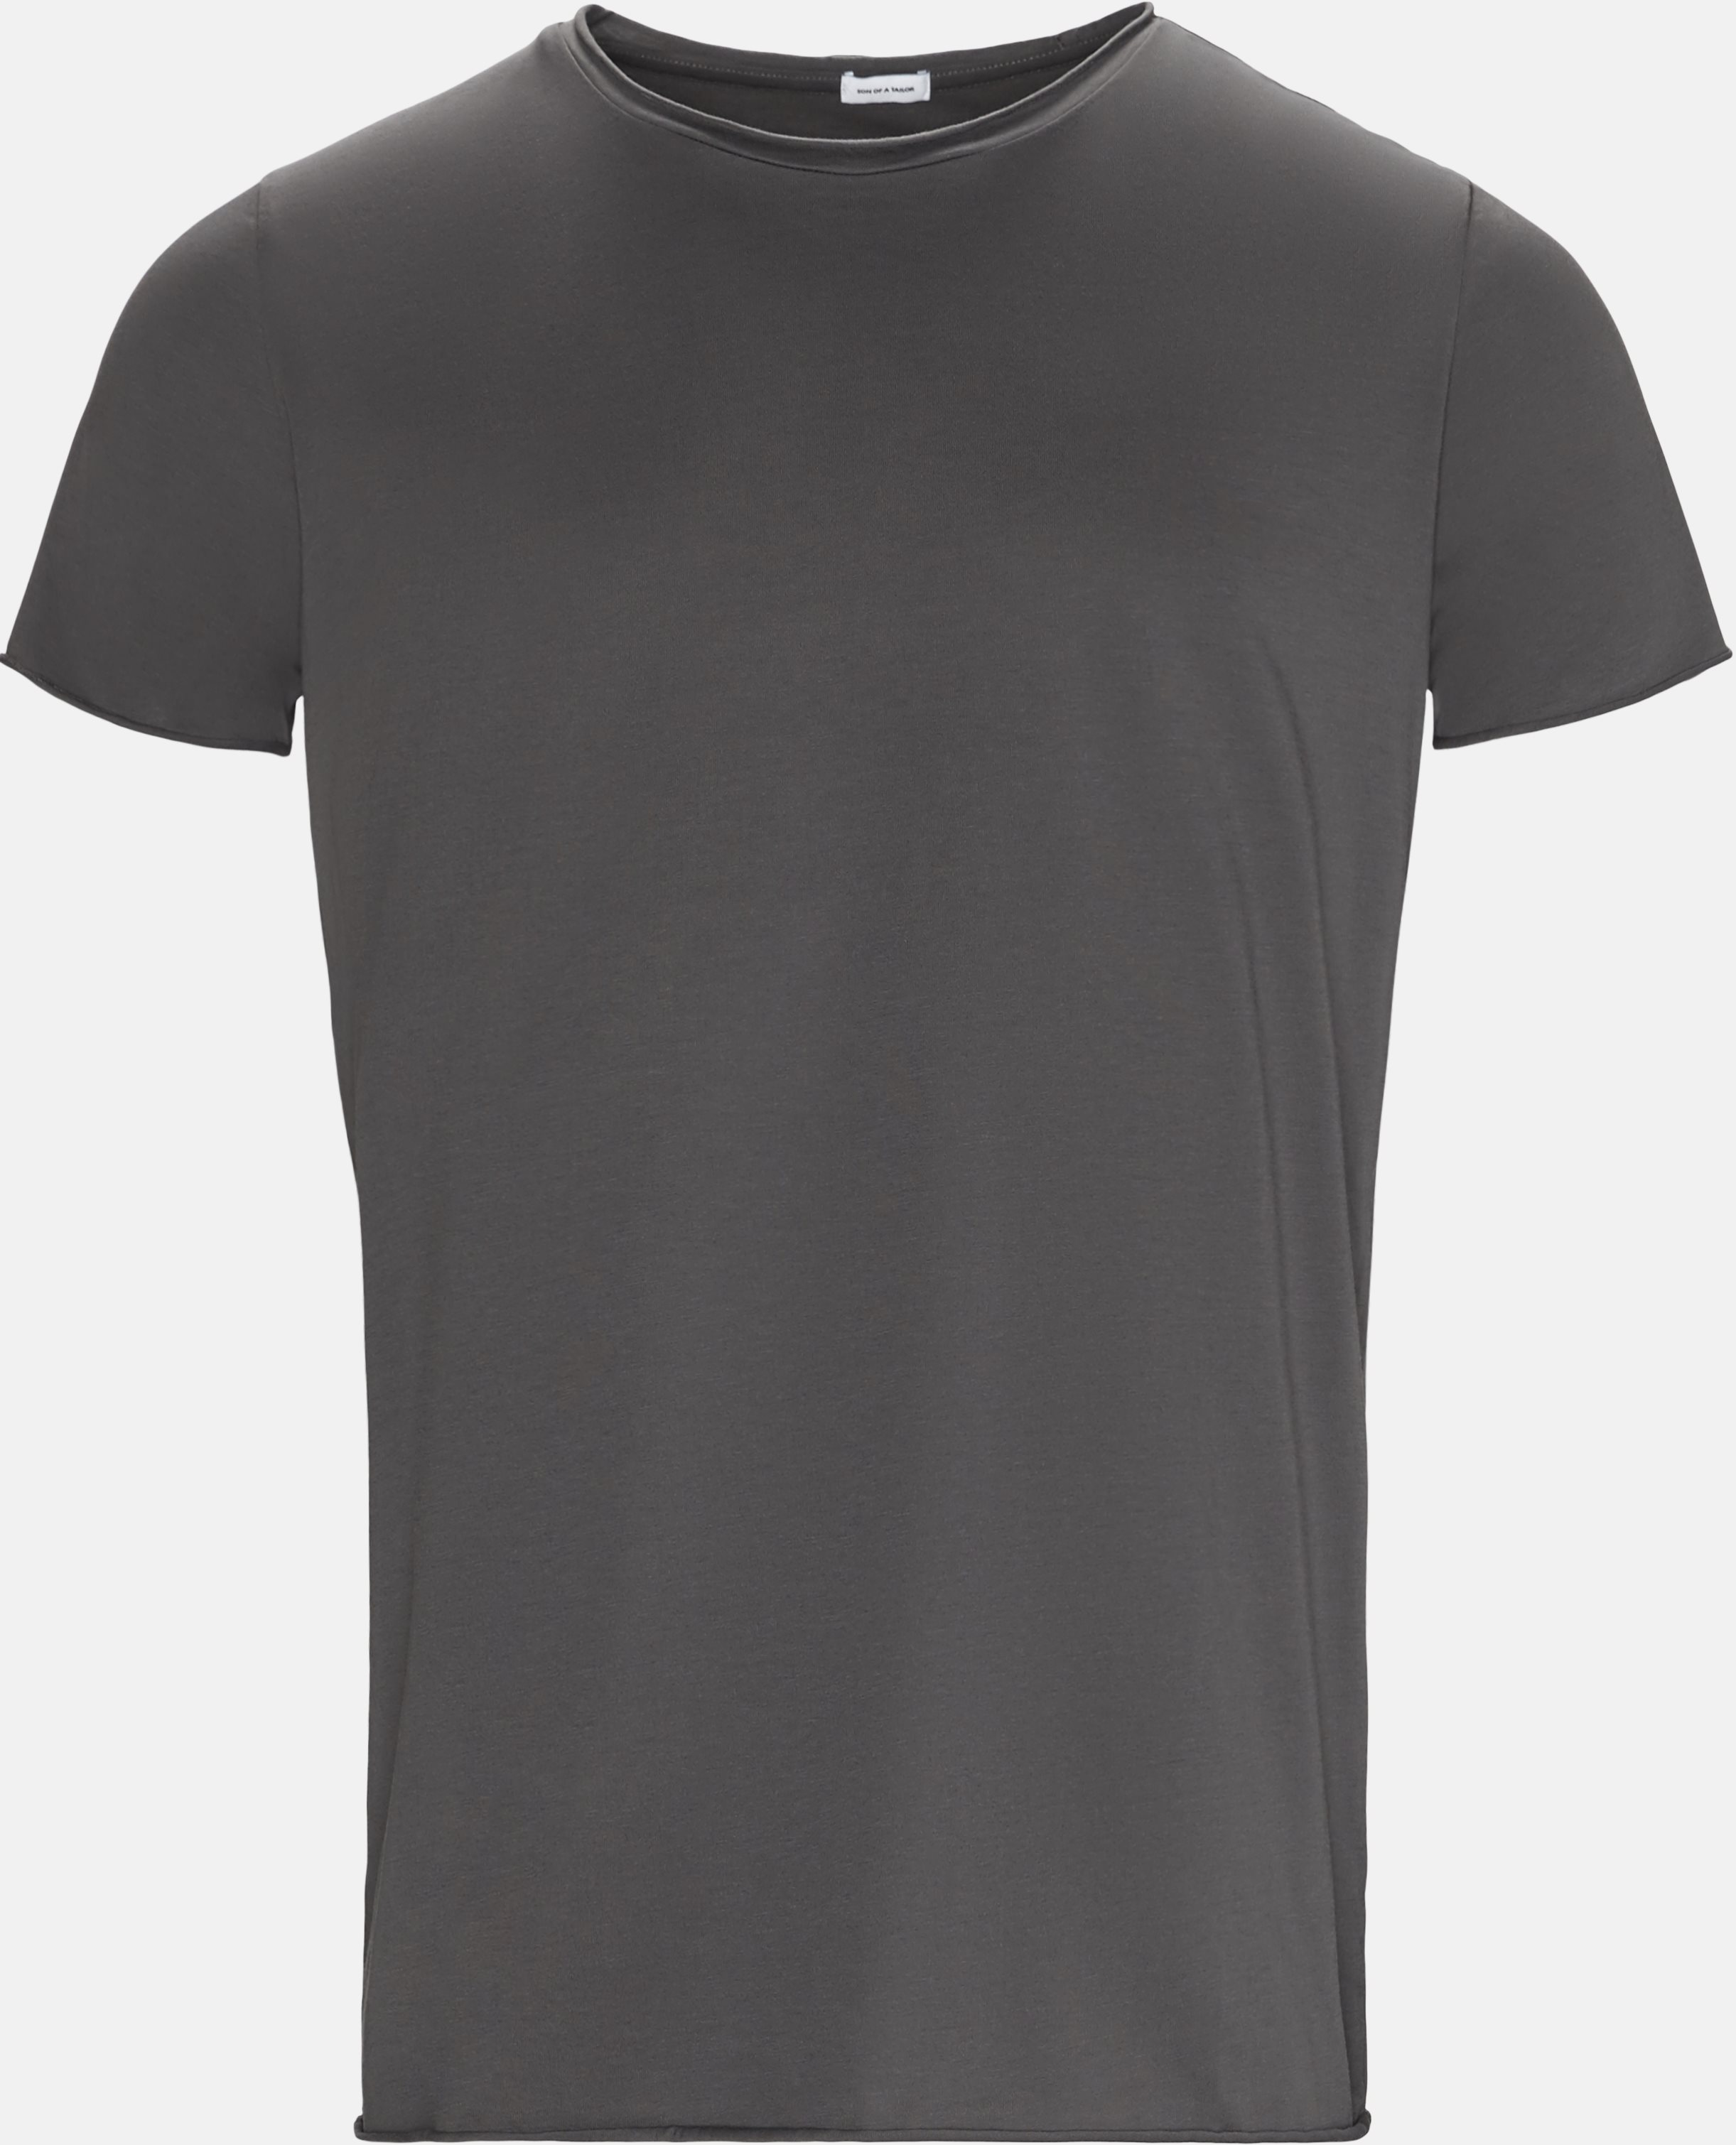 T-shirts - Regular slim fit - Grey